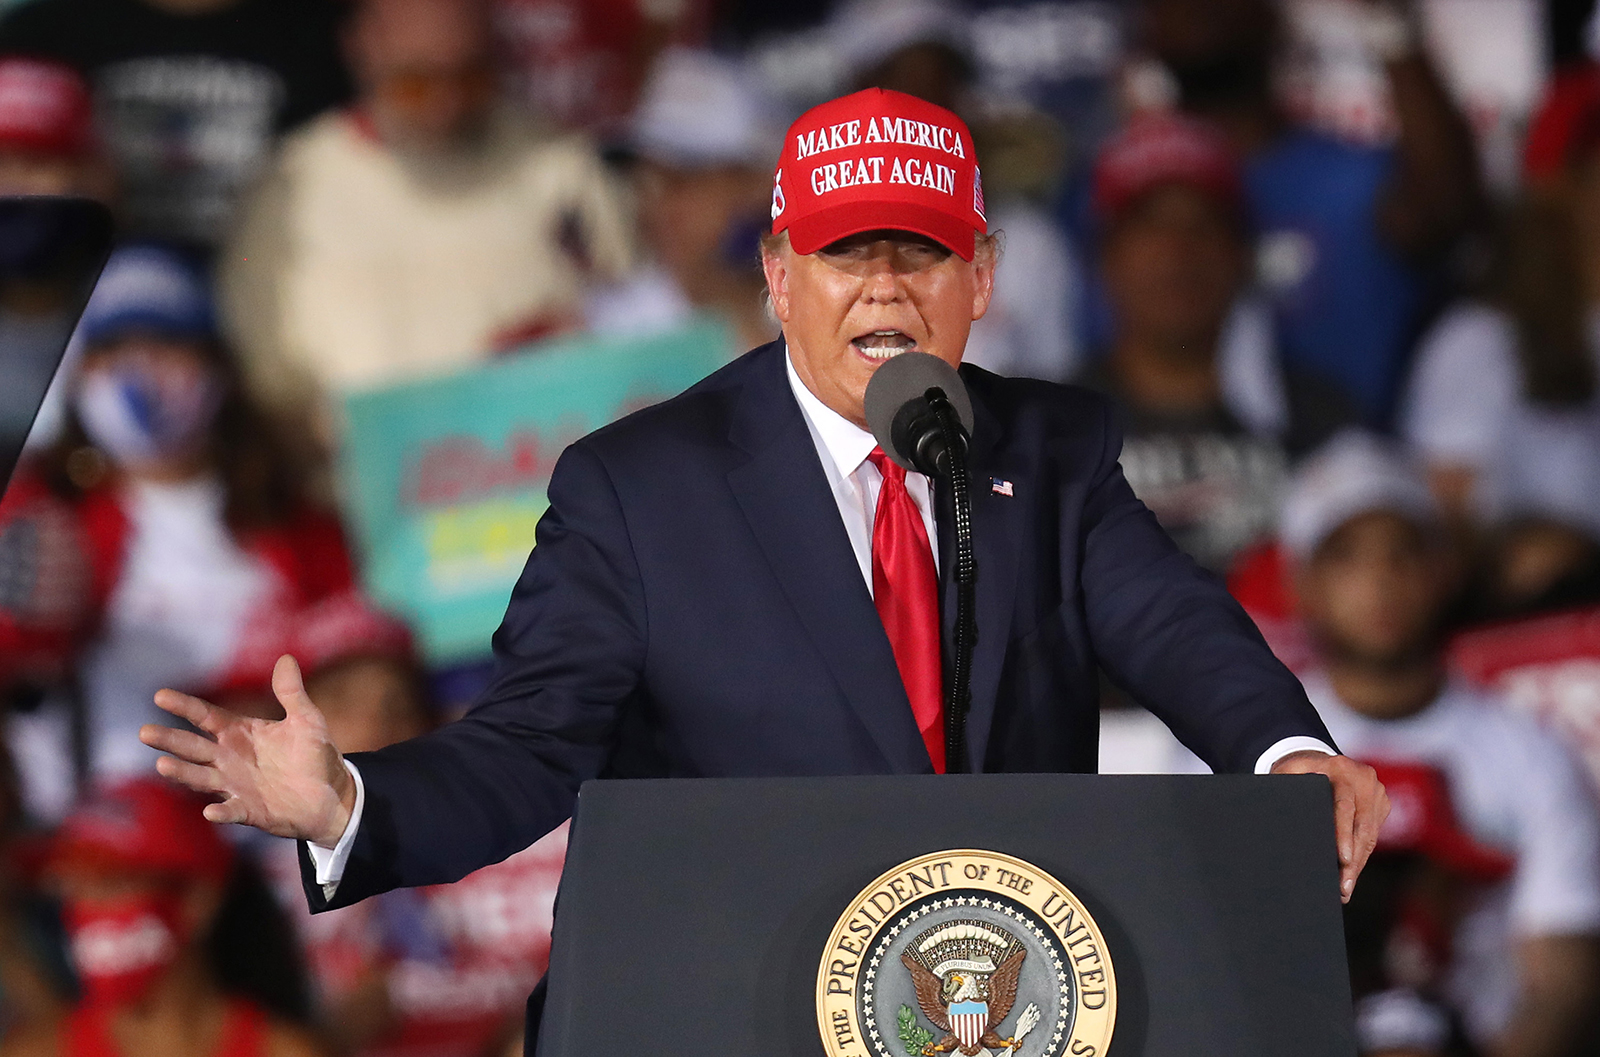 President Donald Trump speaks during his campaign event at Miami-Opa Locka Executive Airport in Opa Locka, Florida, on November 1, 2020 .